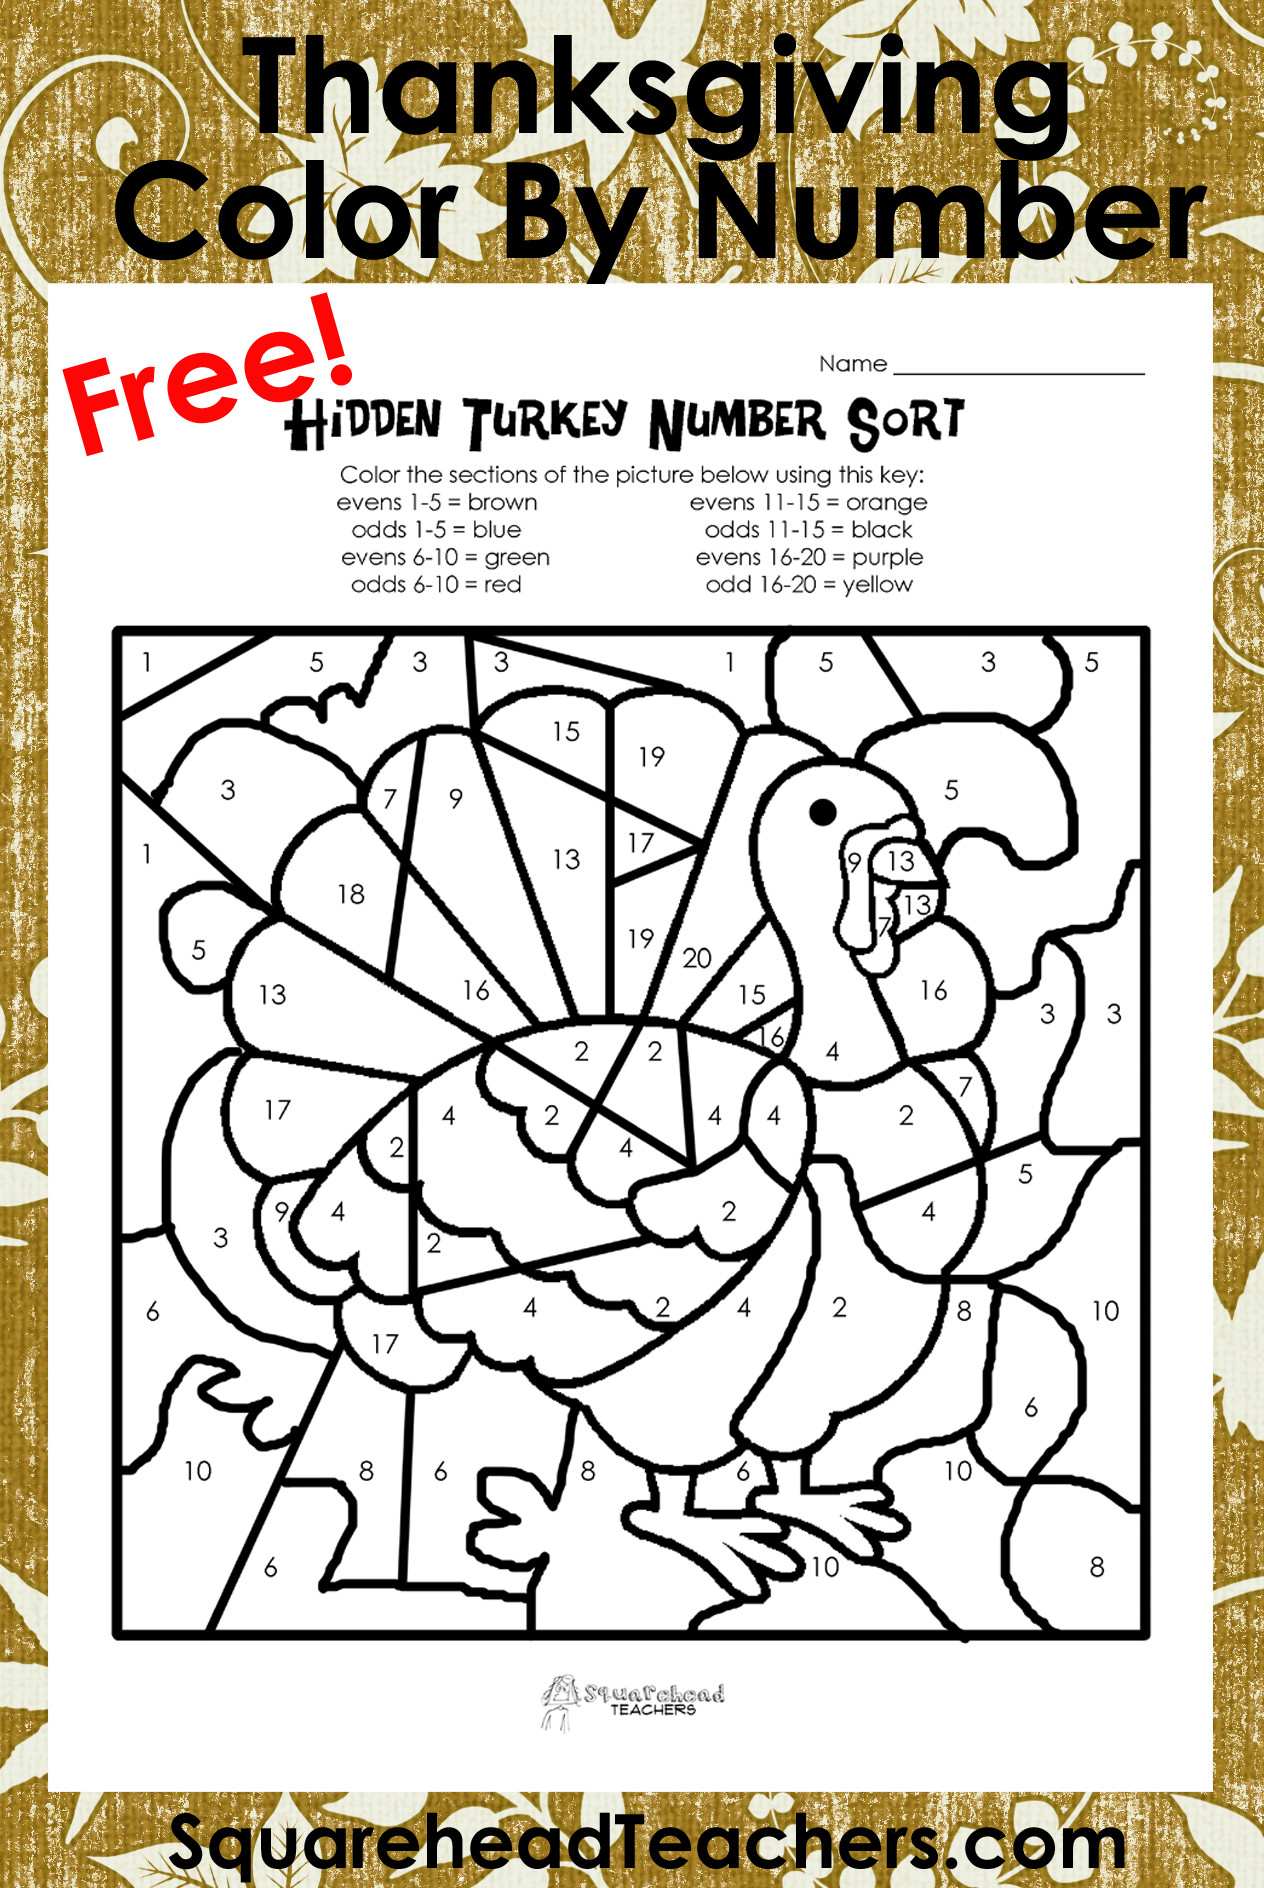 Thanksgiving Math Coloring Worksheets Thanksgiving Color by Number Odd evens sort Squarehead